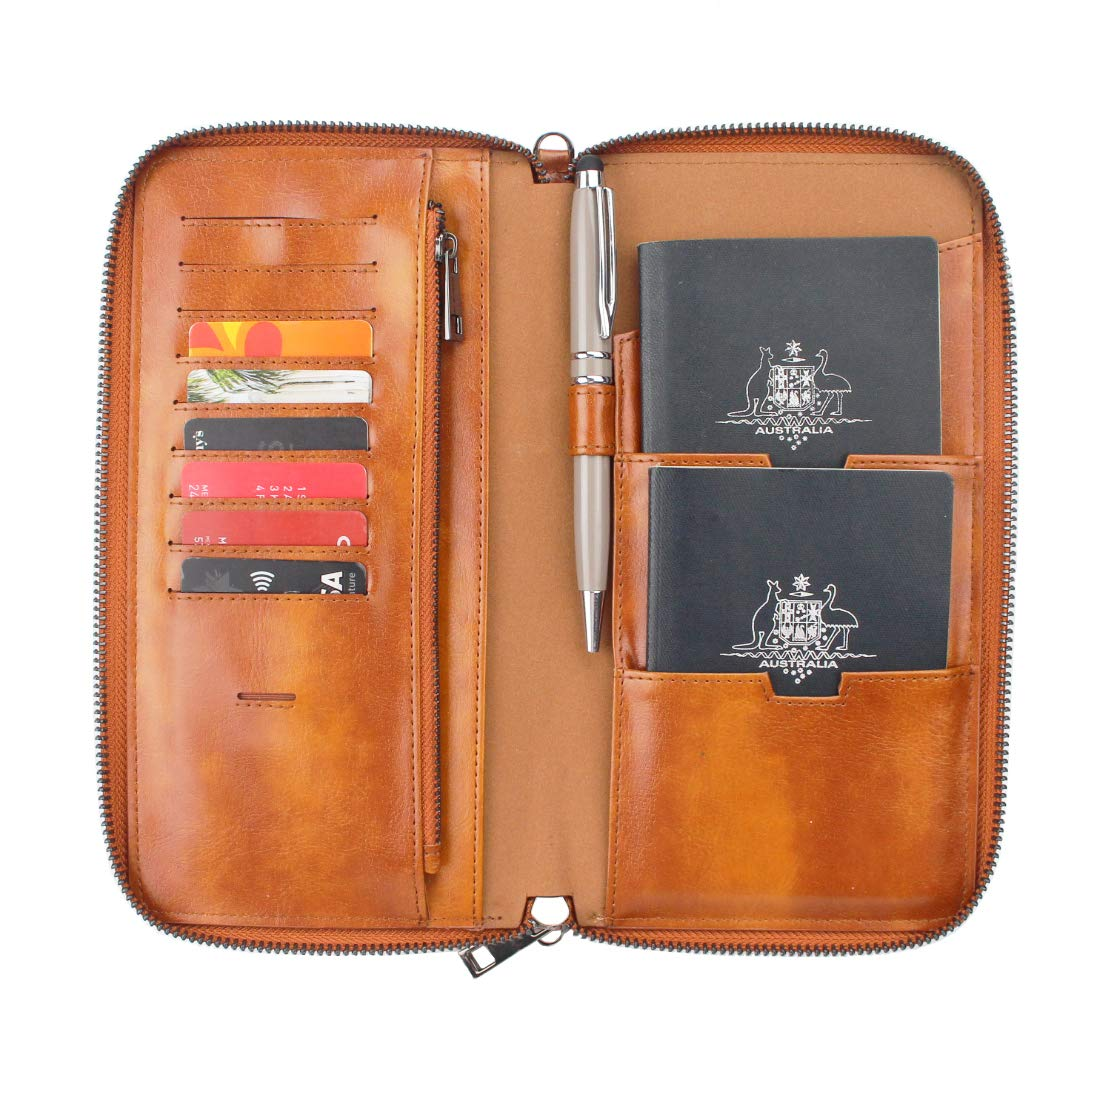 Gallaway Leather Travel Wallet Two Passports Holder Cover Documents Organizer by Gallaway Leather